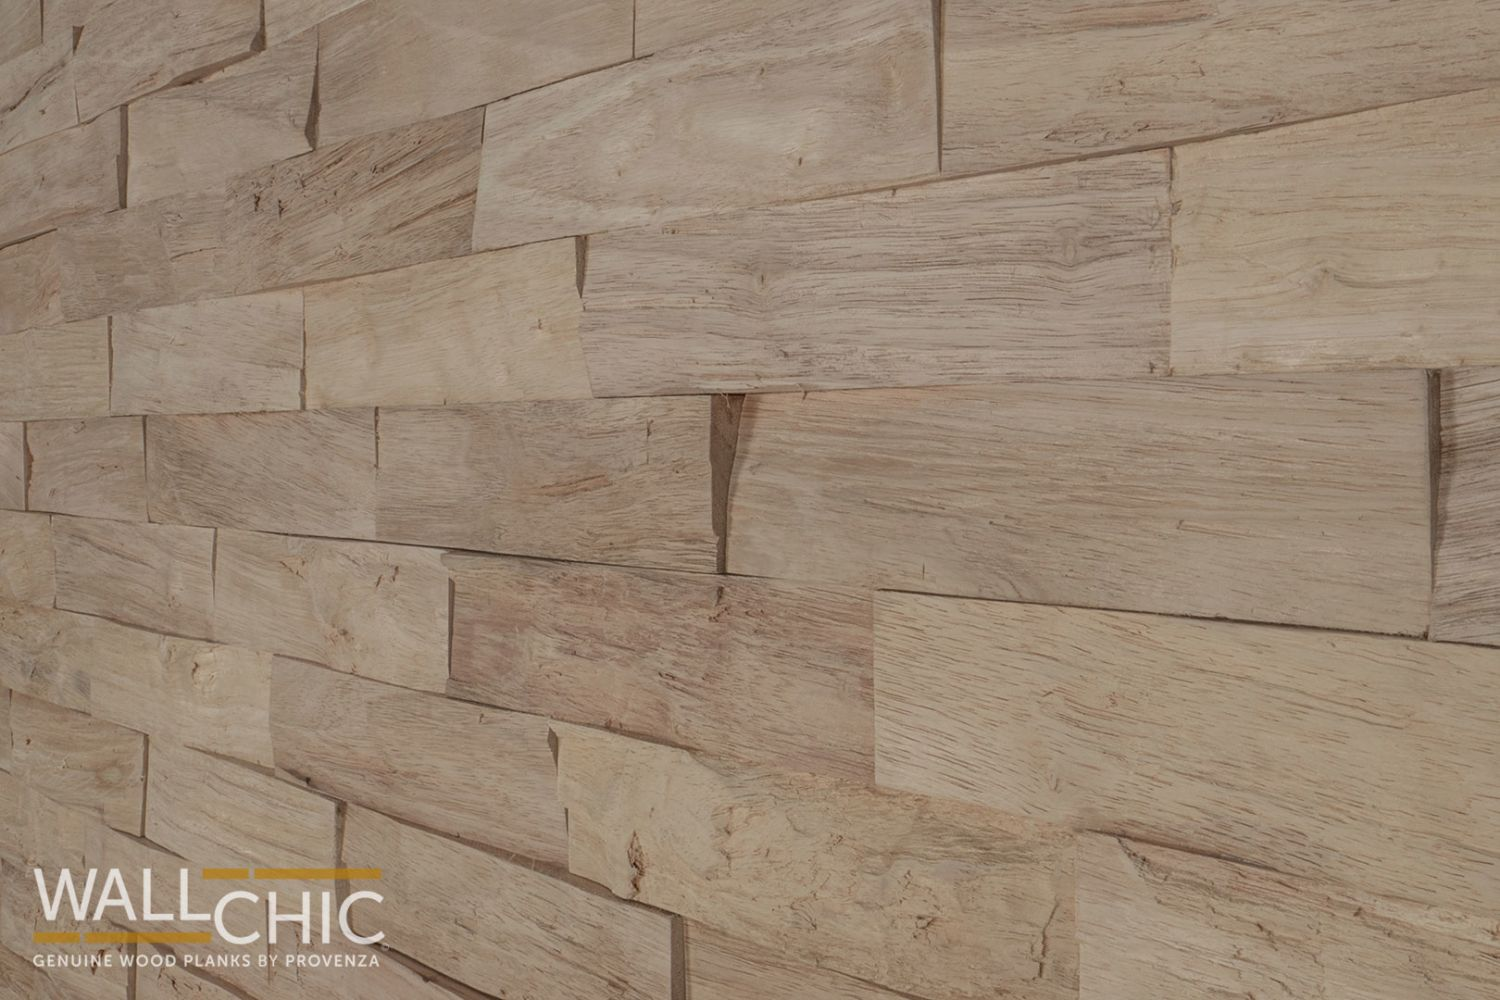 Provenza Wall Chic Collection Spotlight PRO4010